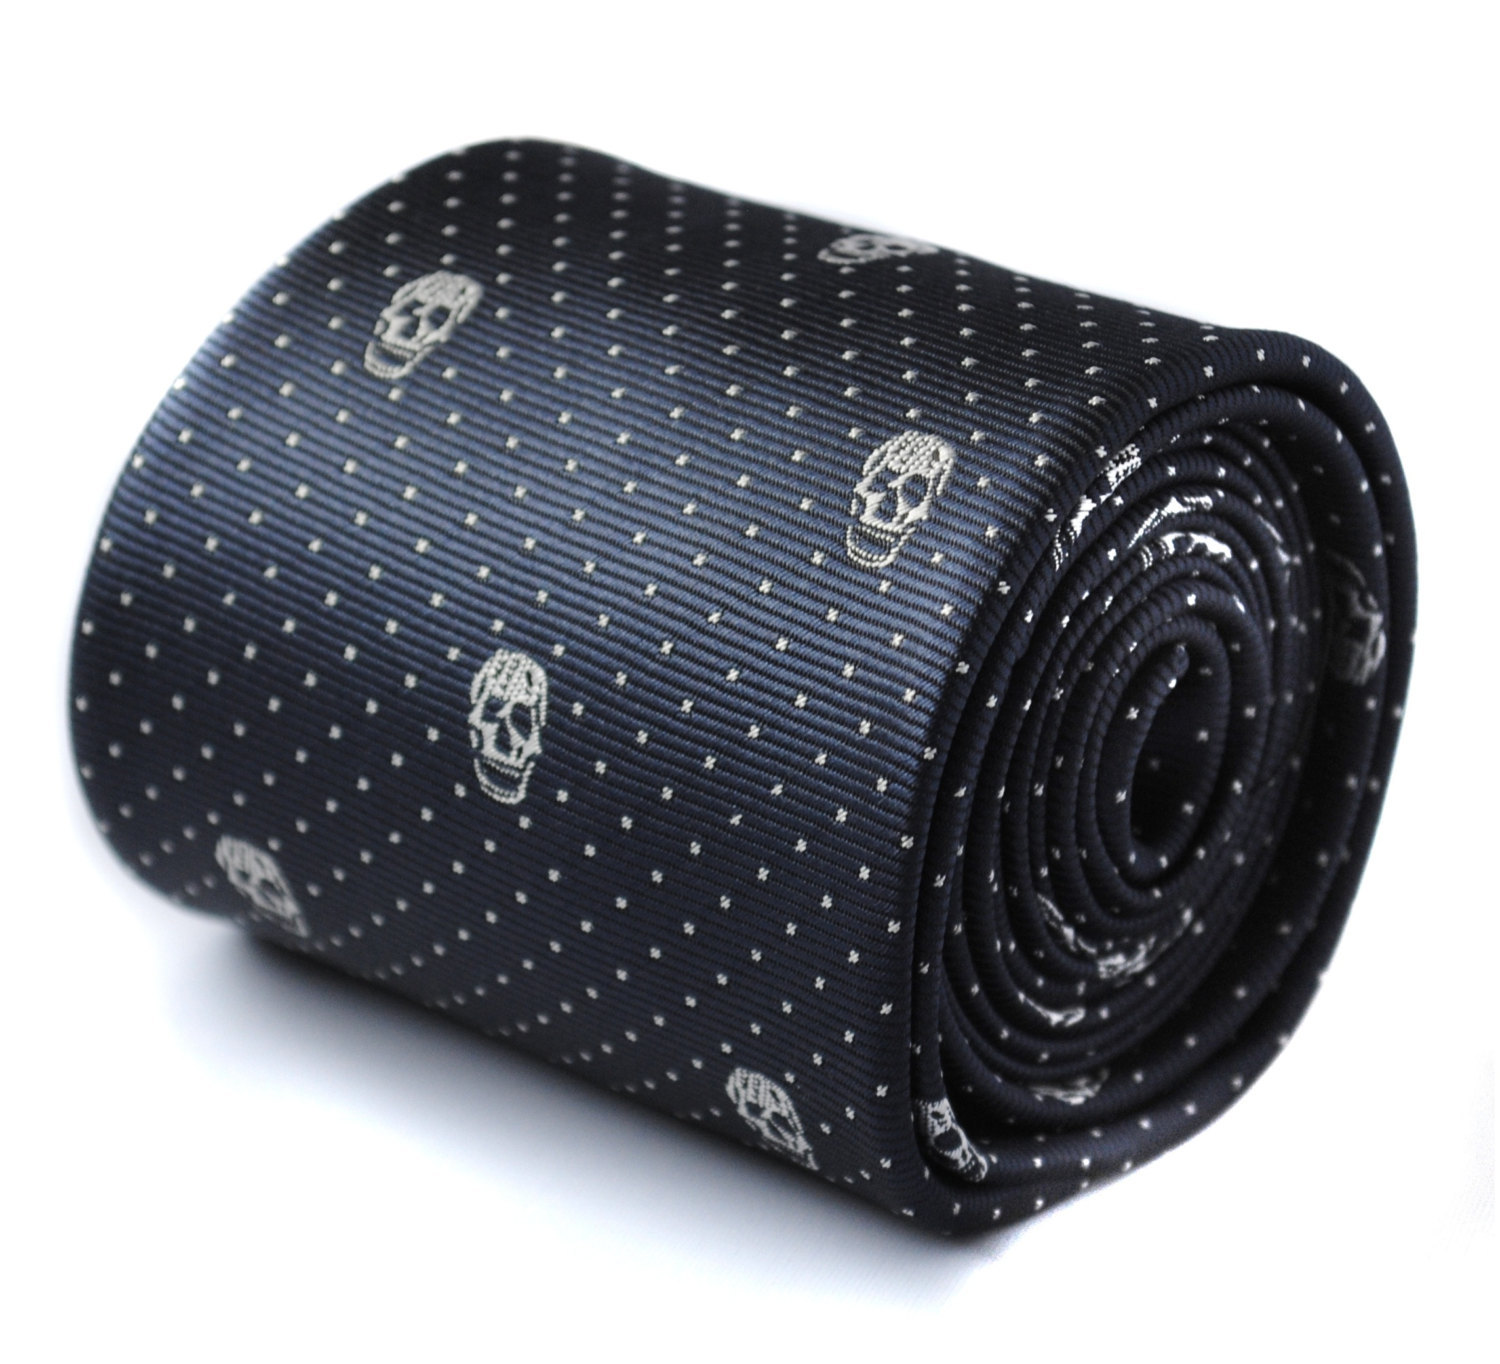 navy skulls design tie with signature floral design to rear by Frederick Thomas